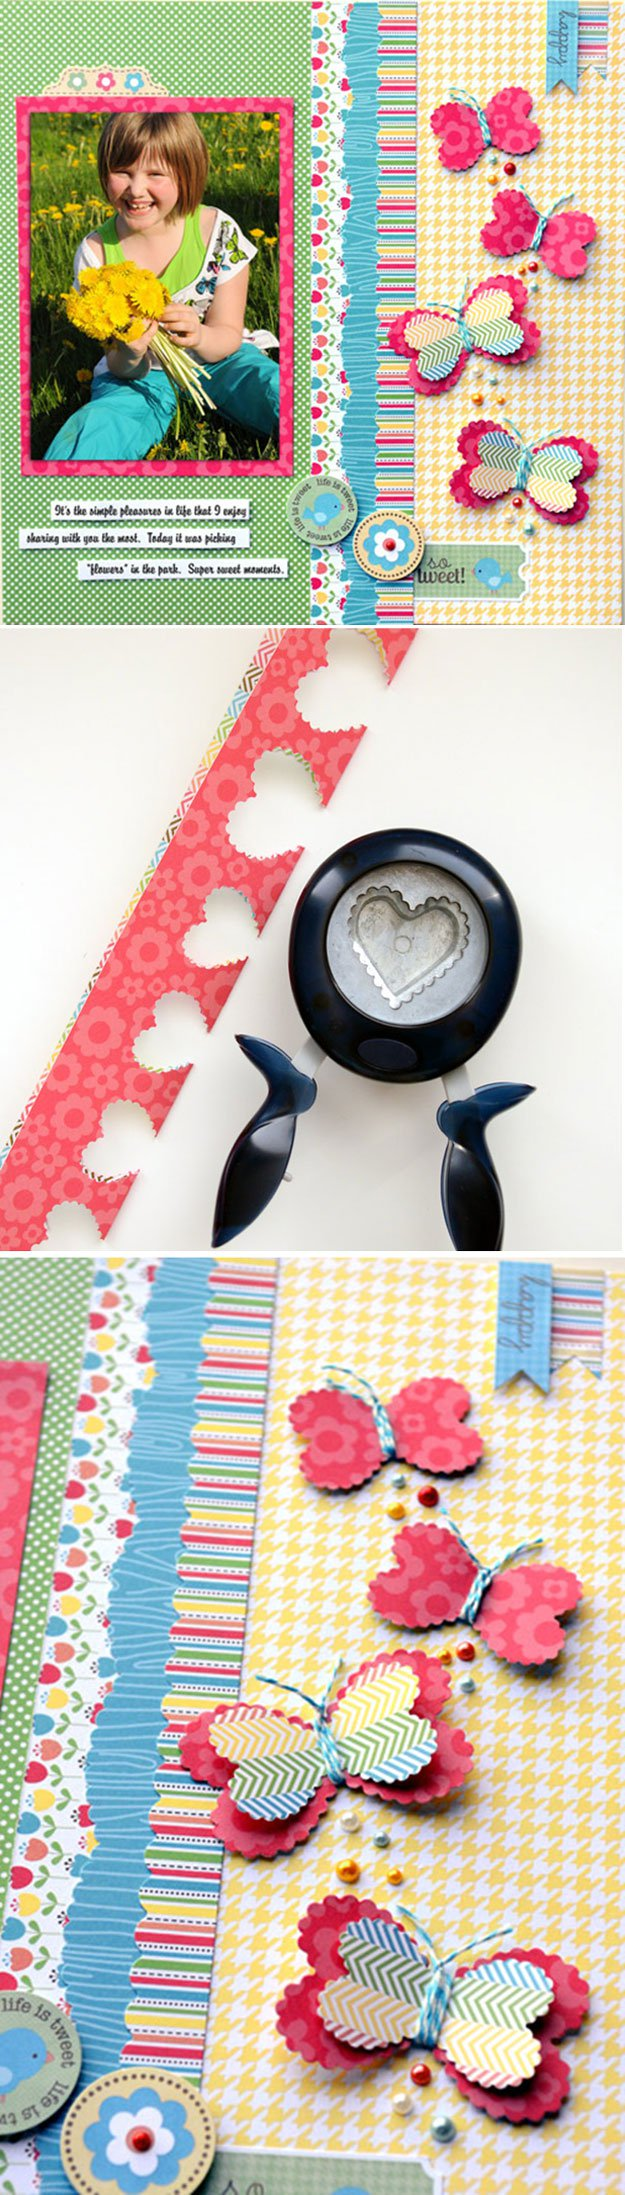 Cool-Scrapbook-Ideas-You-Should-Make-Heart-Butterflies.jpg